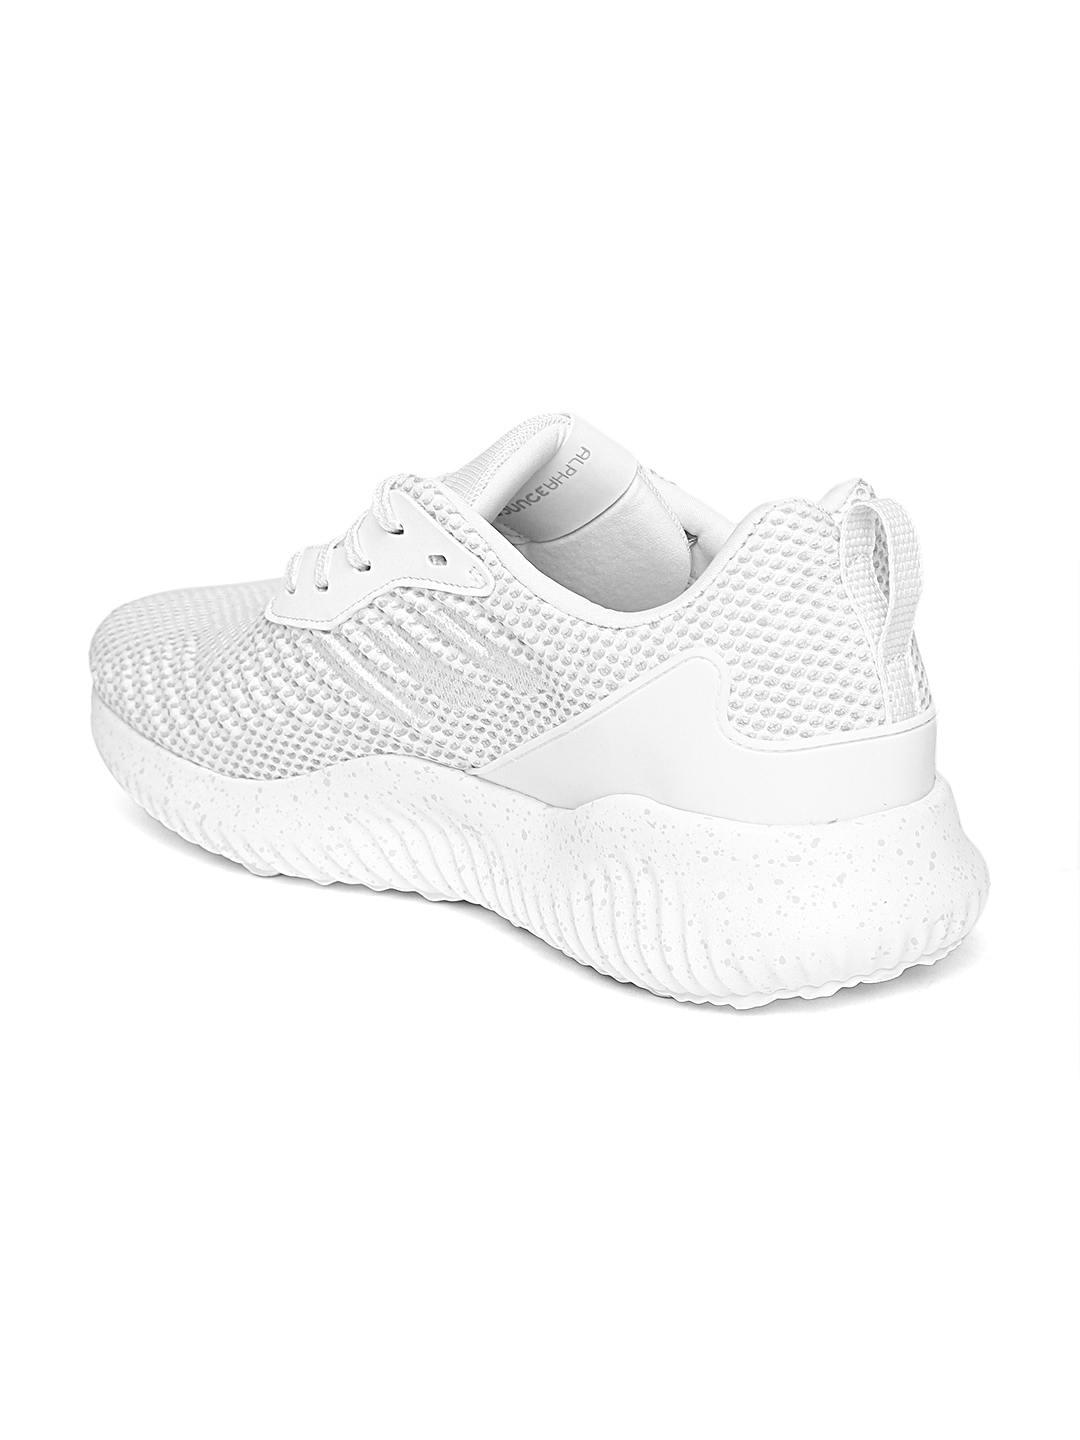 Buy ADIDAS Men White ALPHABOUNCE RC Running Shoes - Sports Shoes for ... 3c0285c28